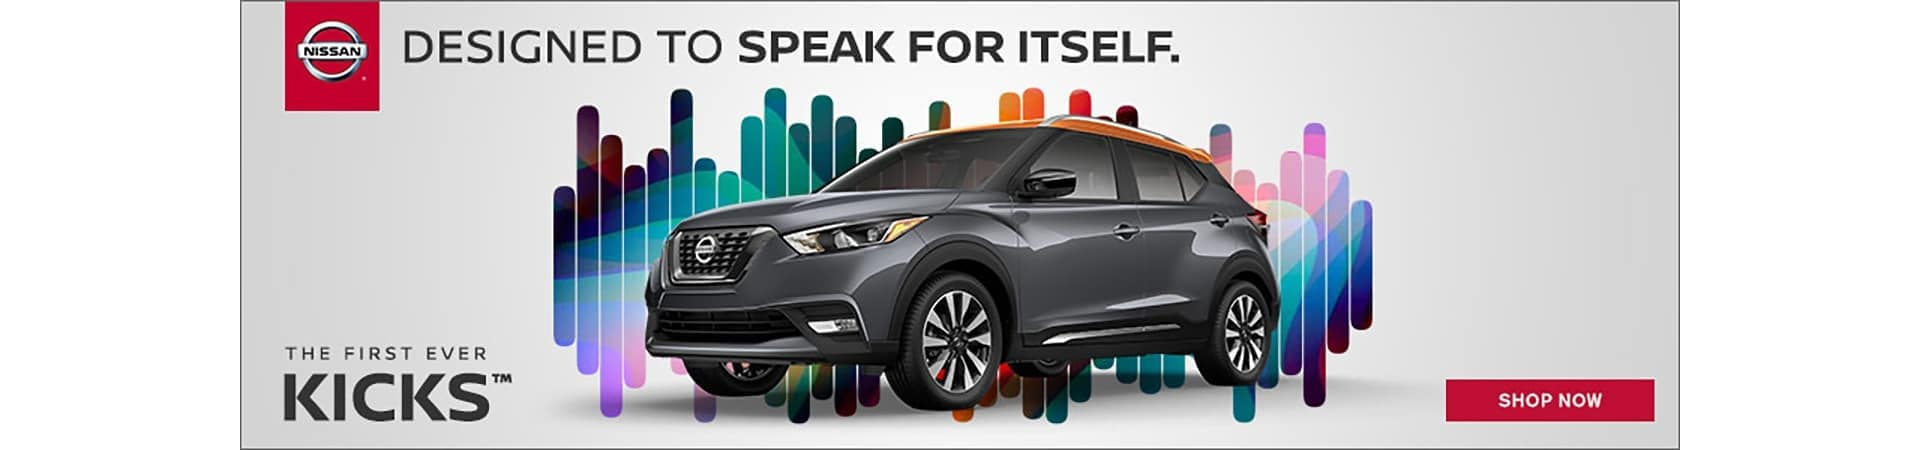 New 2018 Nissan Kicks